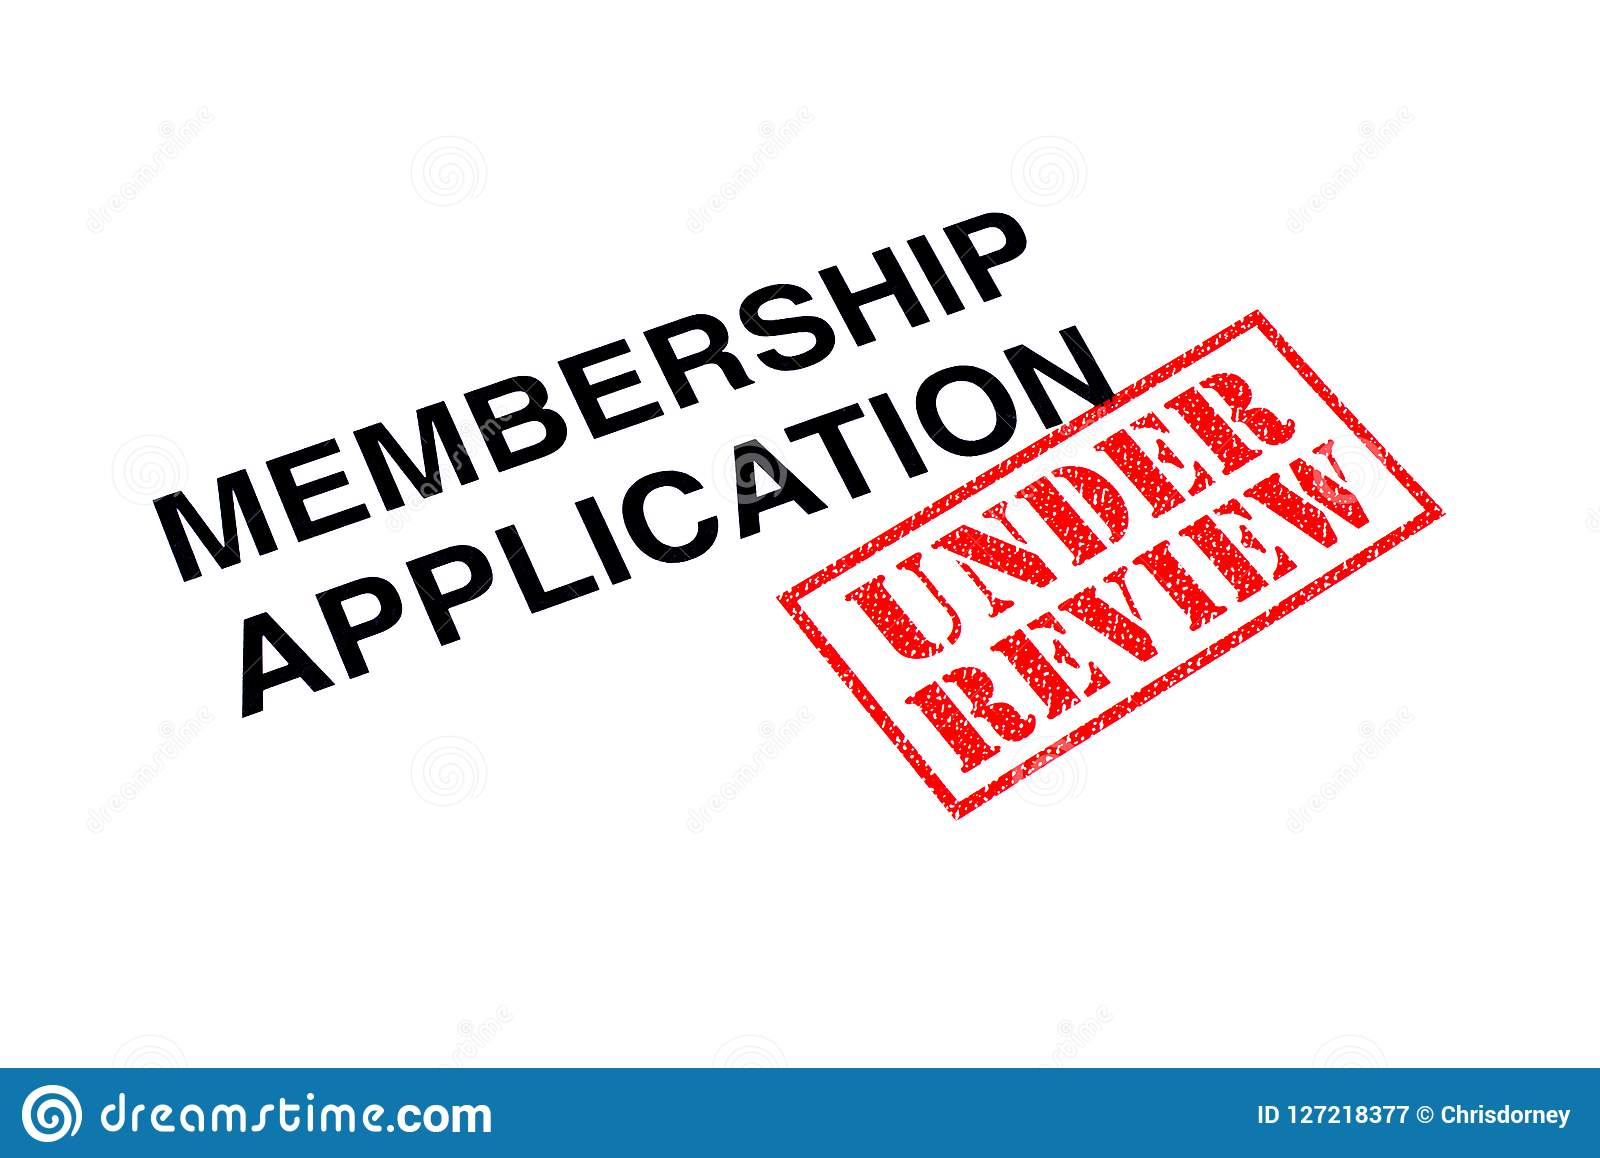 Membership Application Under Review Stock Image - Image of